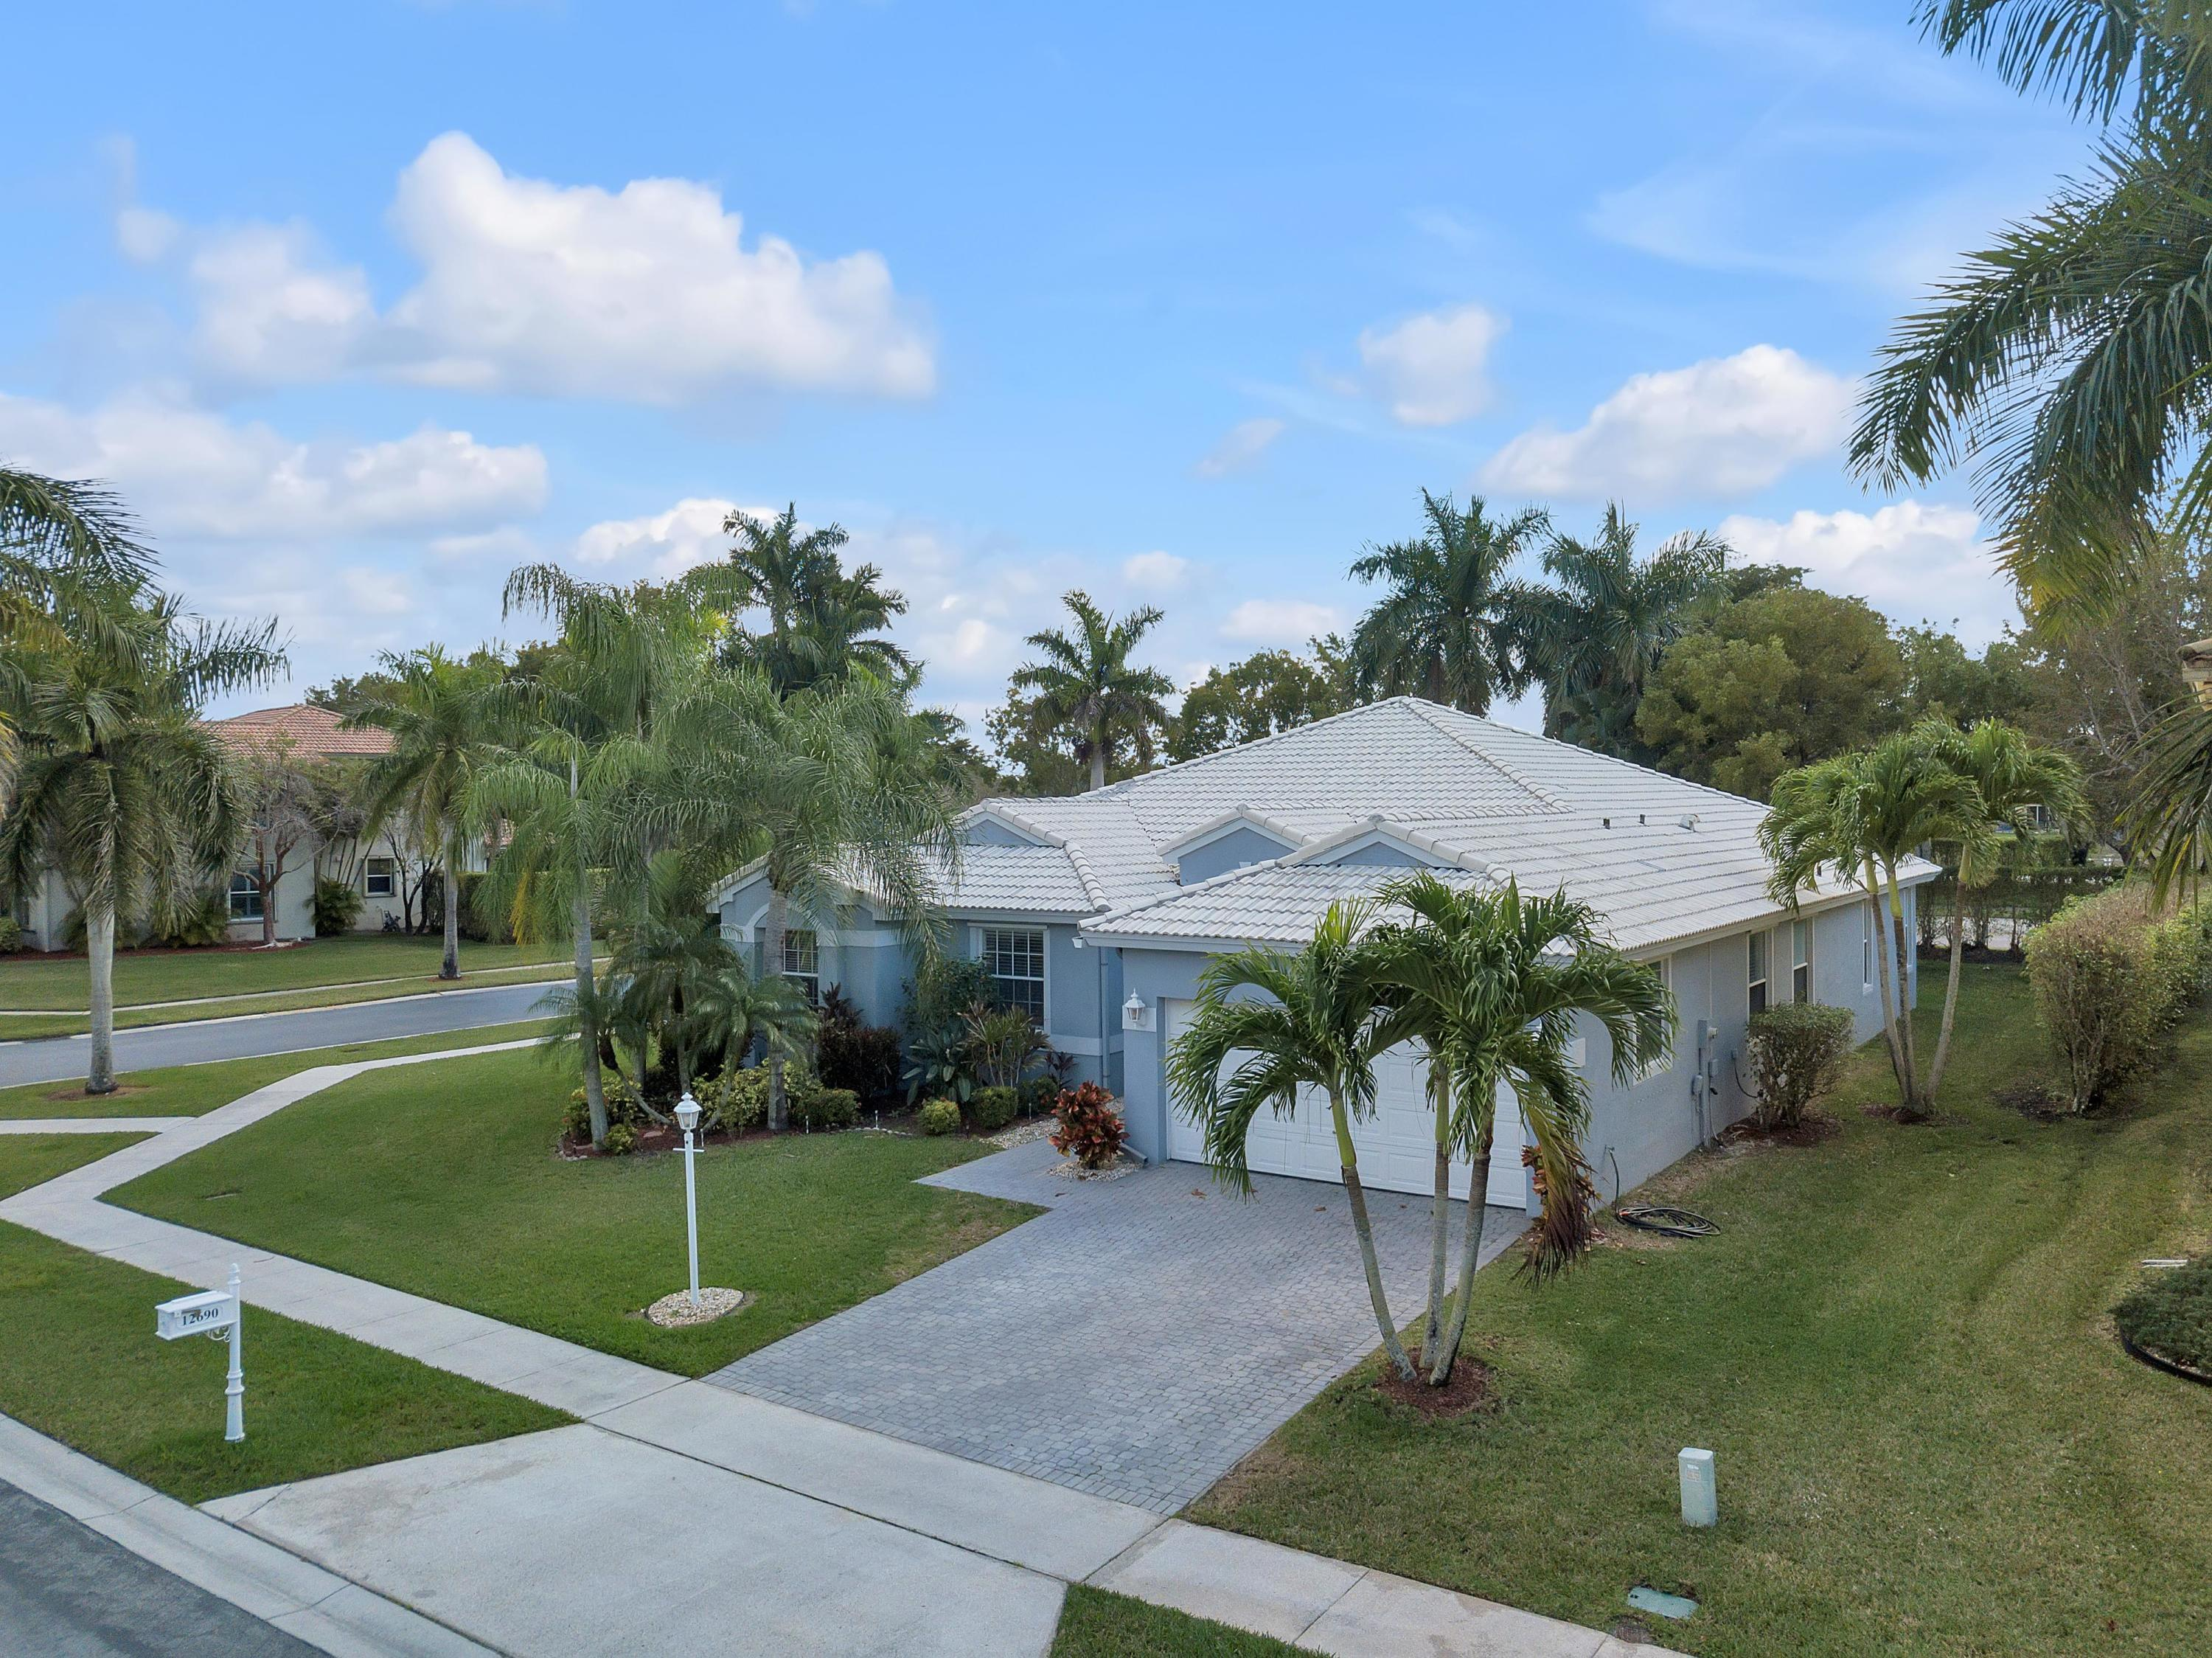 Photo of 12690 Yardley Drive, Boca Raton, FL 33428